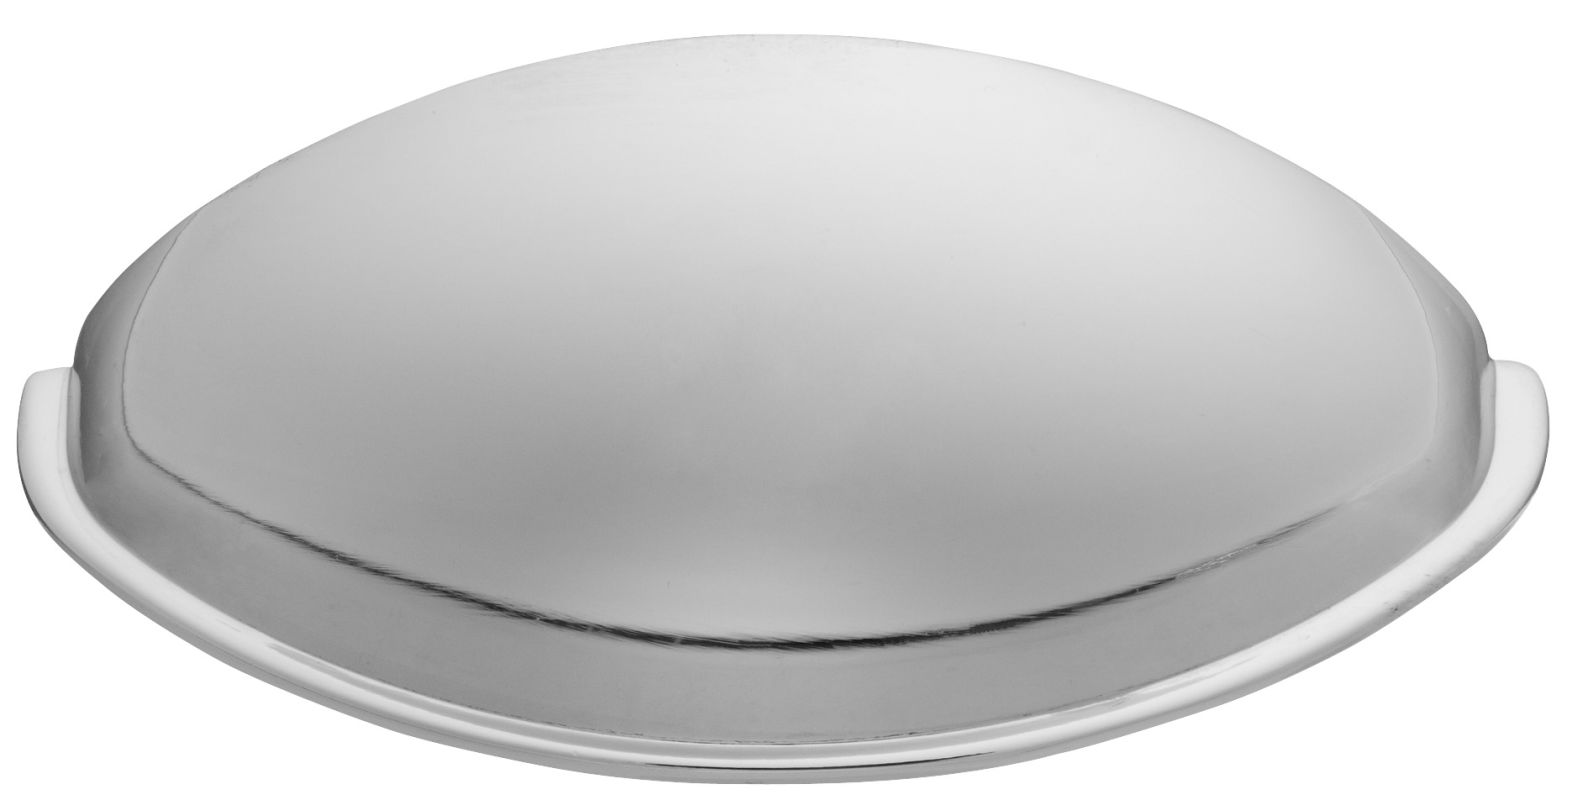 Stanley home designs bb8019chr chrome 2 9 16 inch center for Stanley home designs